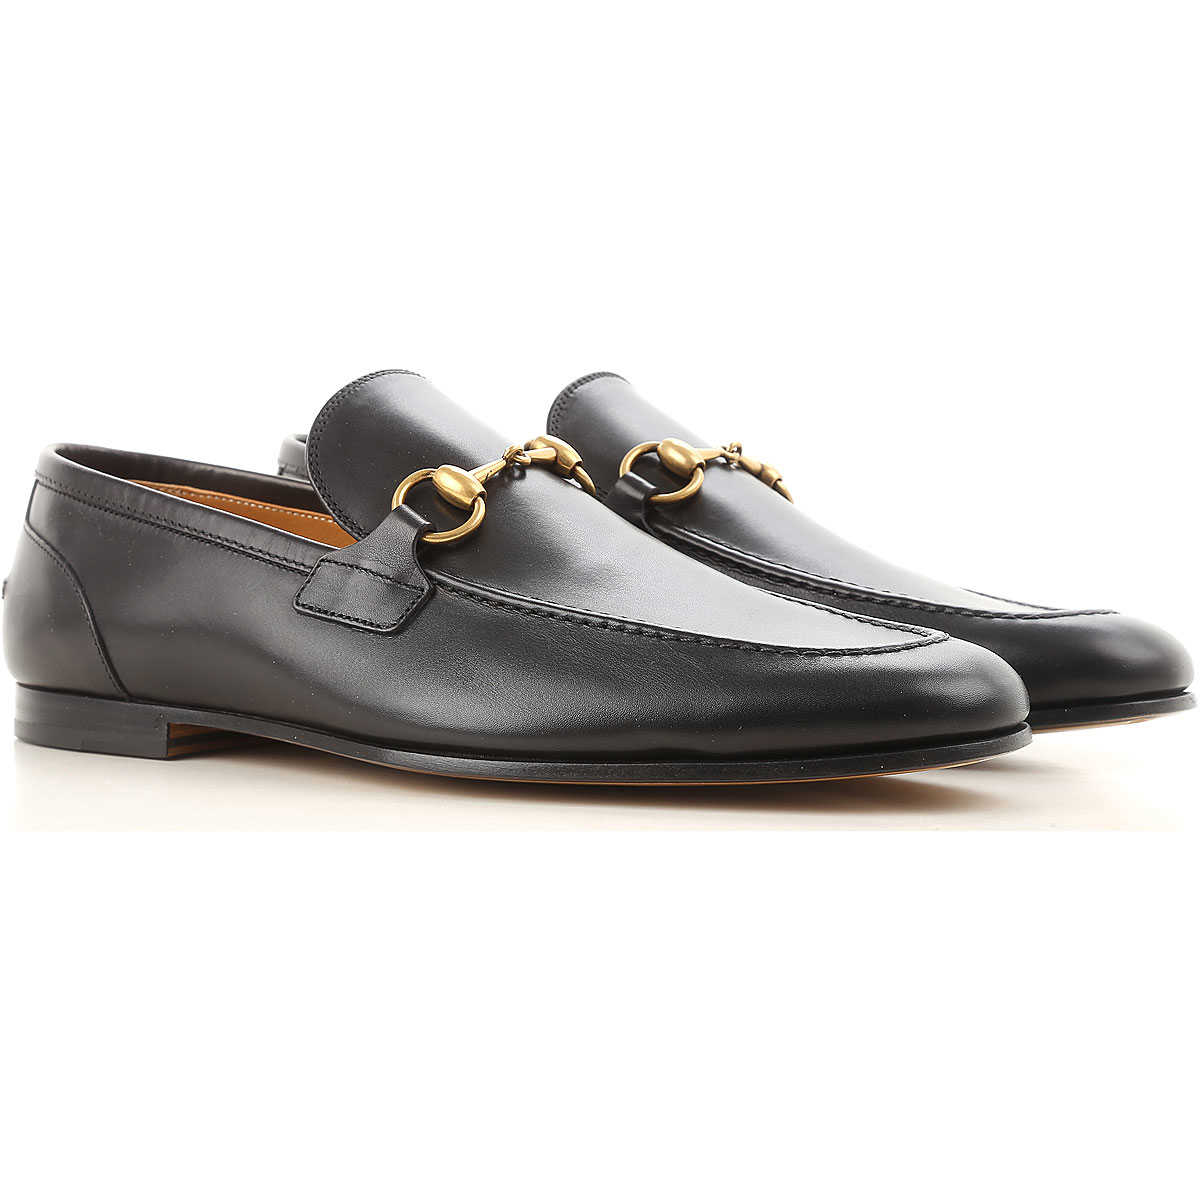 Gucci Loafers for Men Black USA - GOOFASH